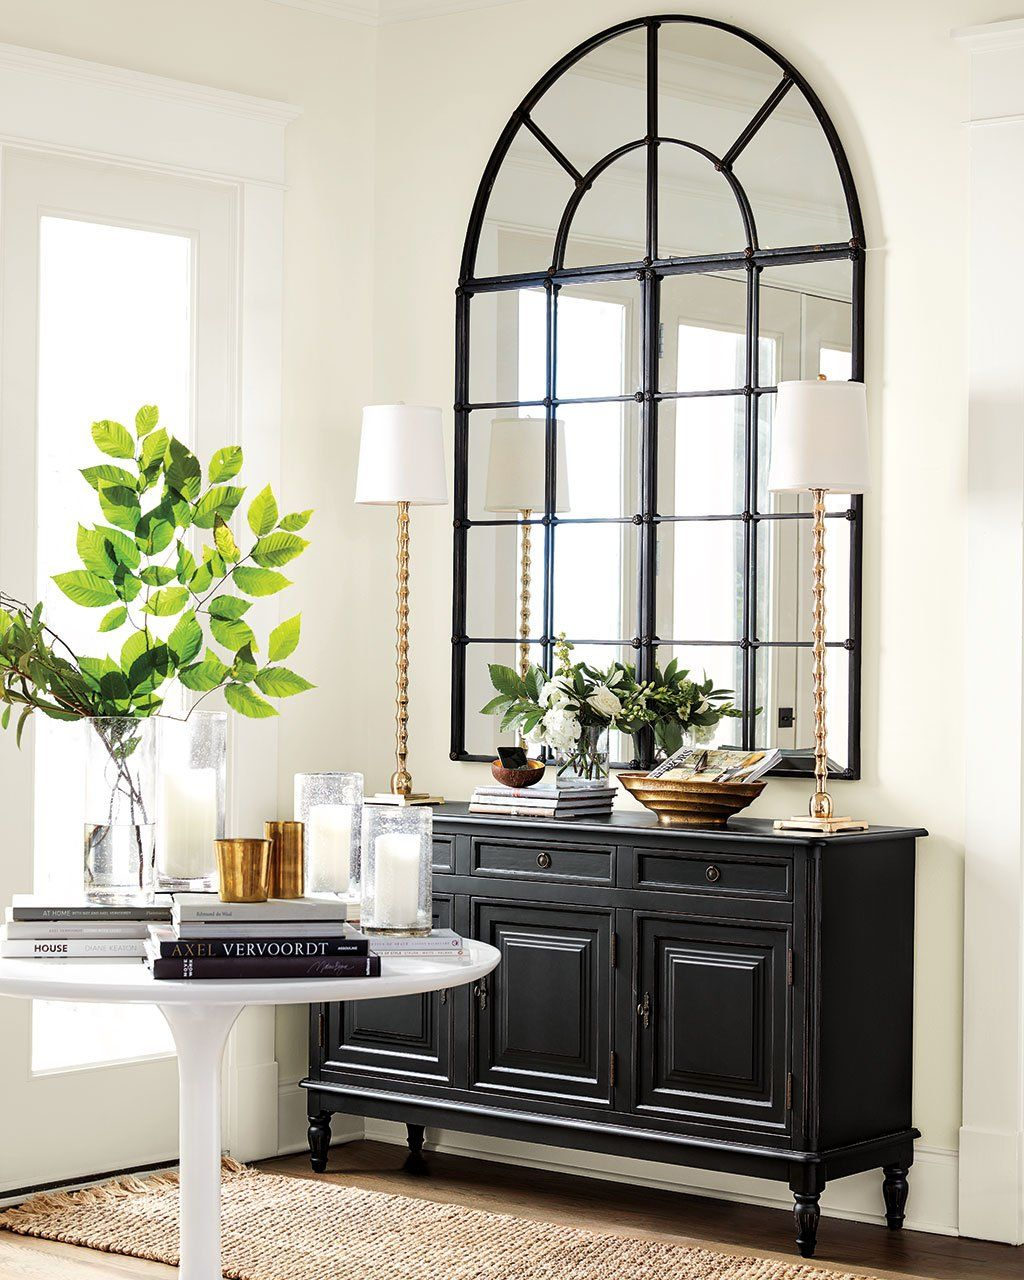 8 Reasons We Love Decorating With Black And White Entryway Table